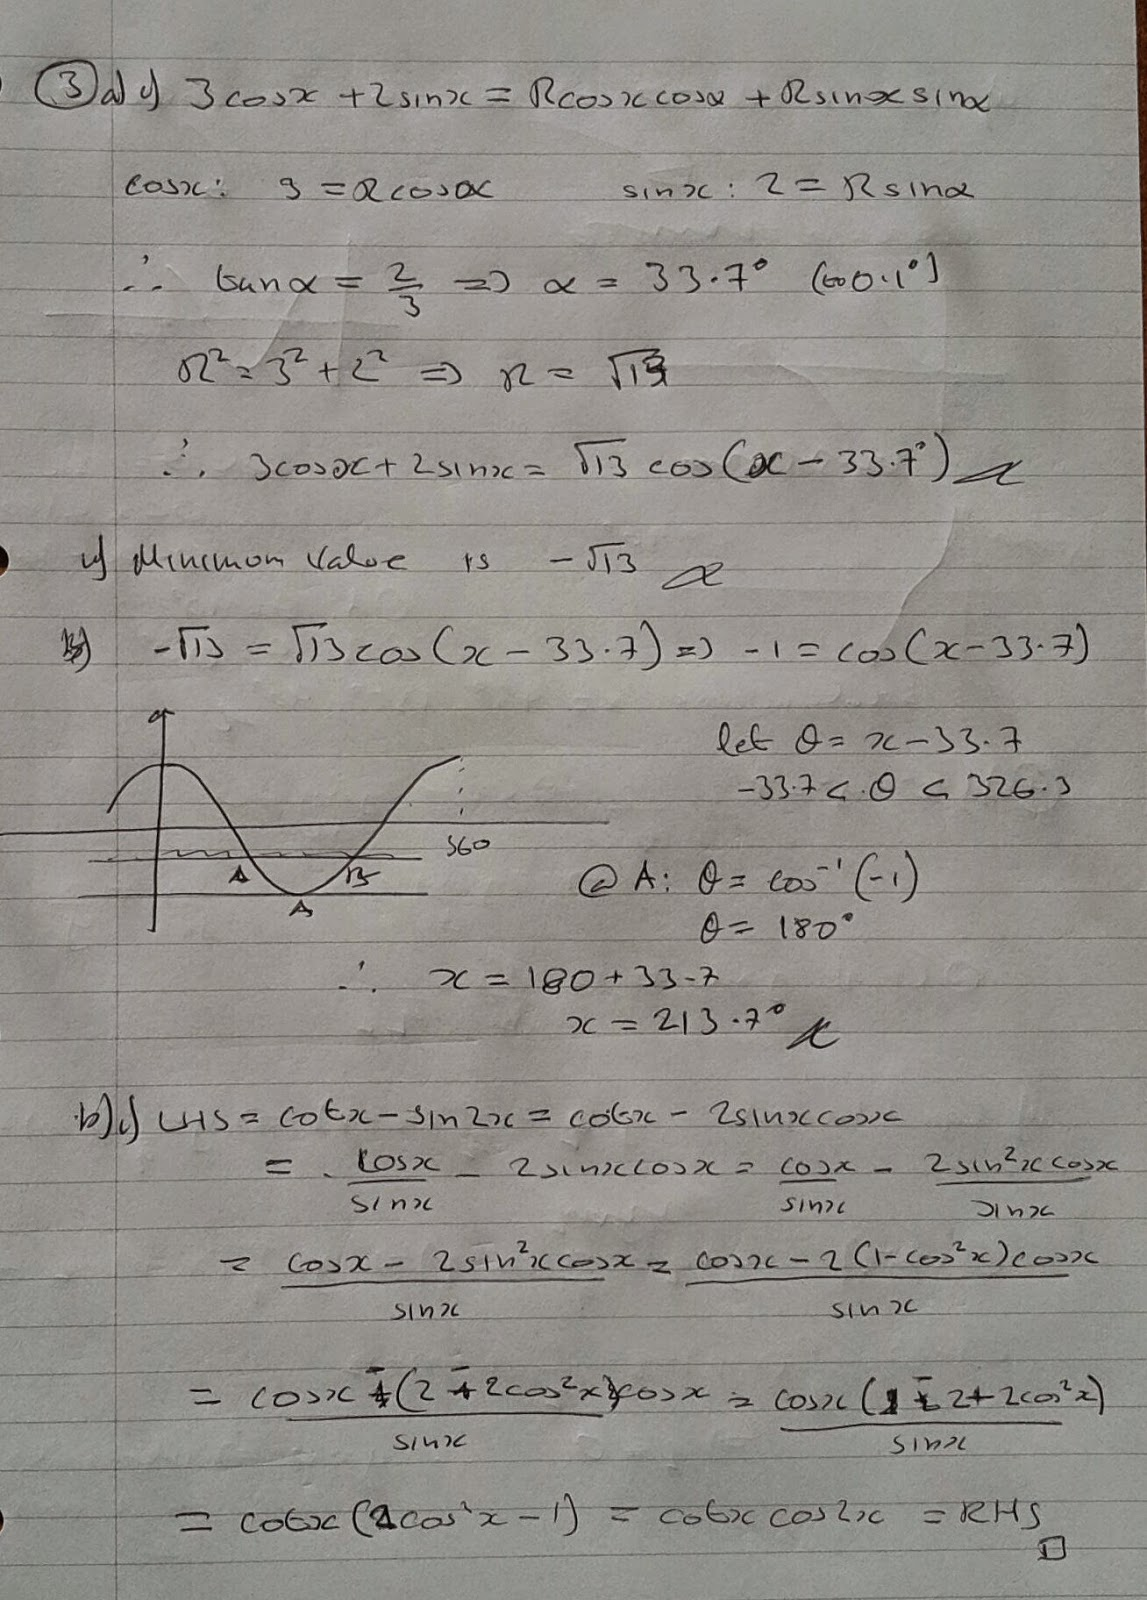 A Level Maths Notes: AQA Core 4 Winter 2013 Exam Paper